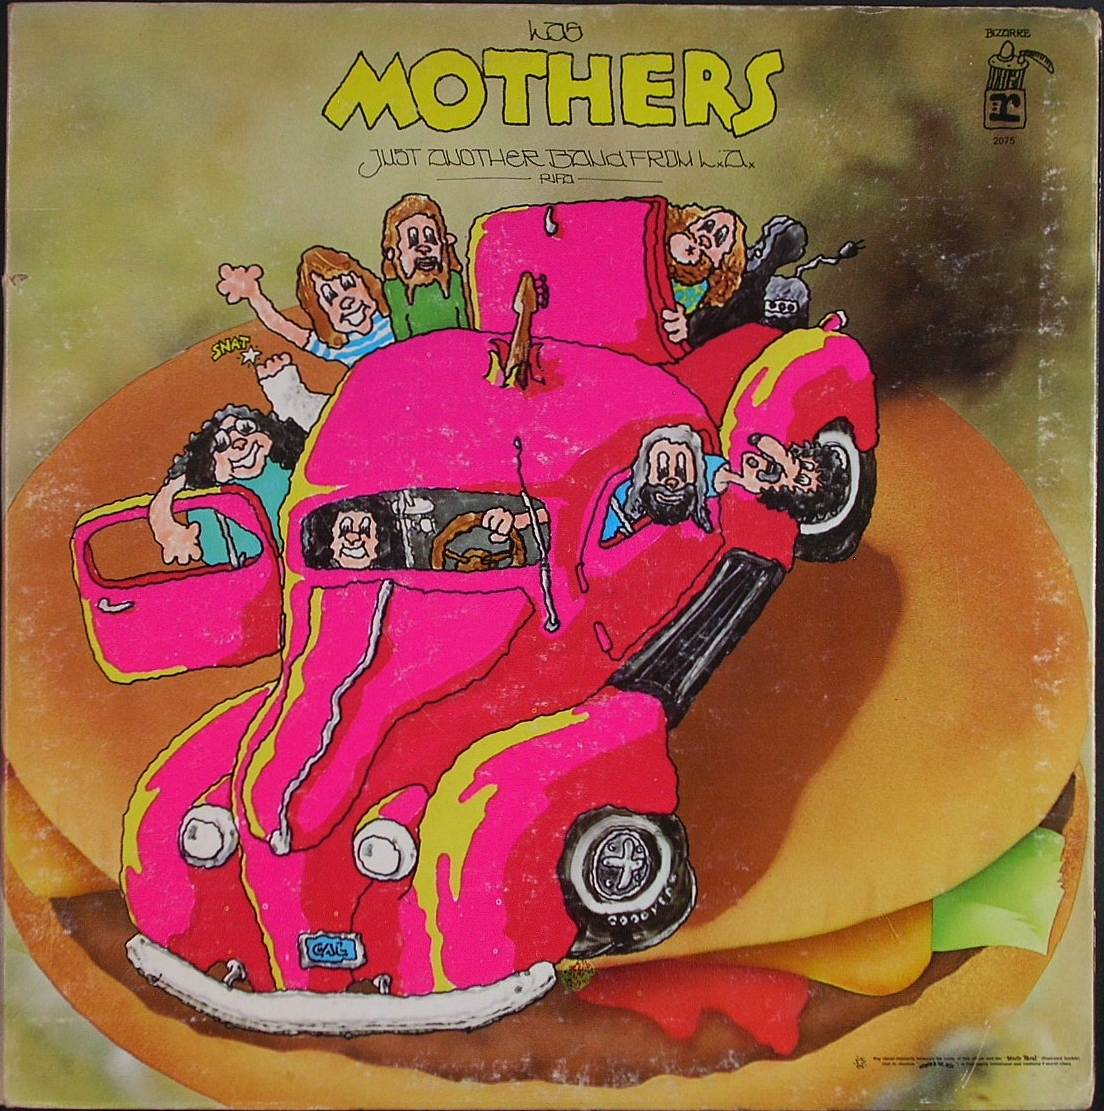 Frank Zappa & Mothers / Just Another Band From L.A. ジャスト・アナザー・バンド・フロム L.A.